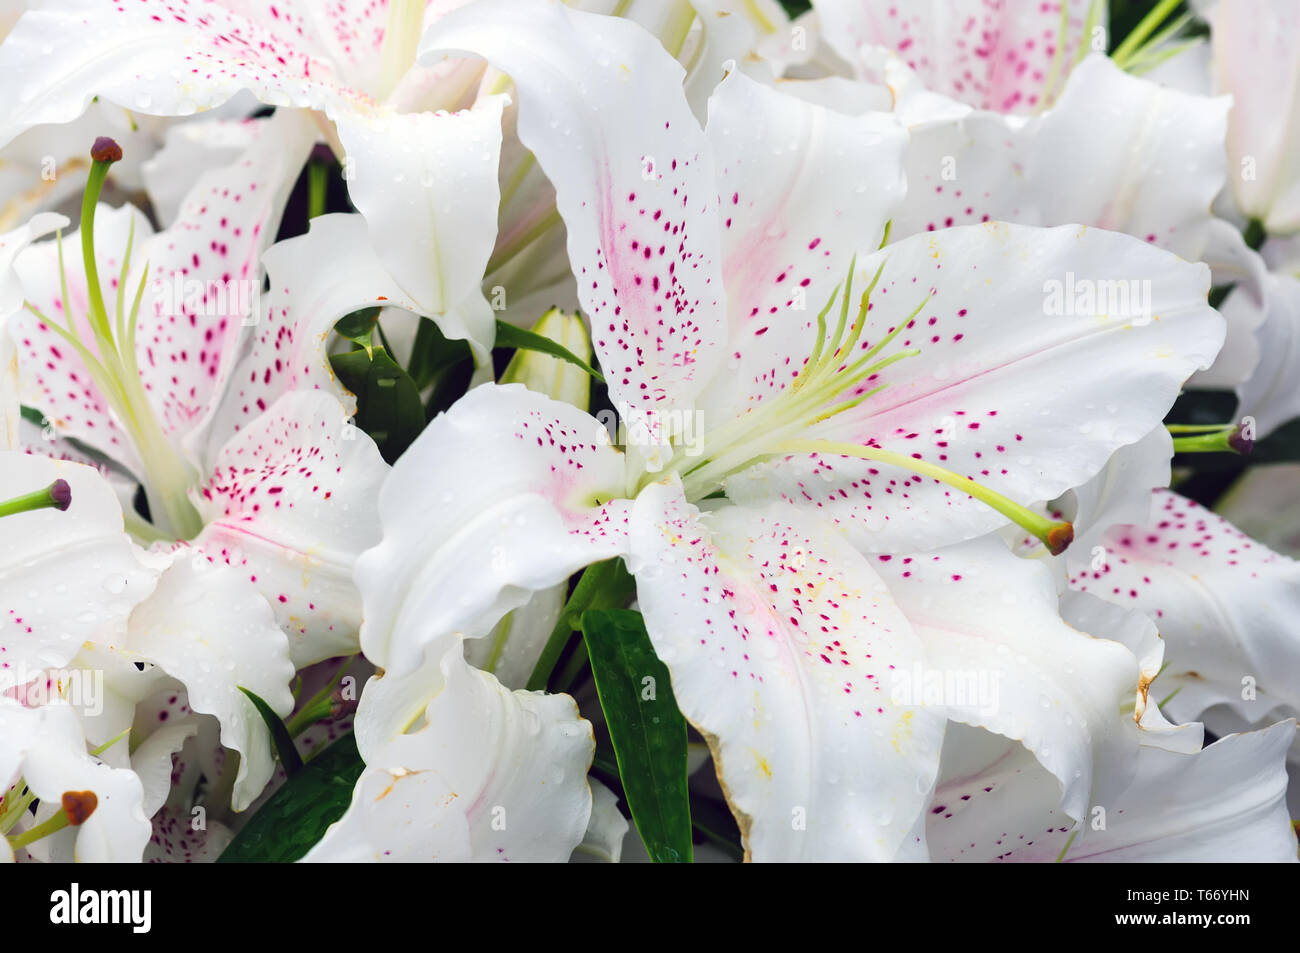 many Lily flowers in the garden close up view Stock Photo